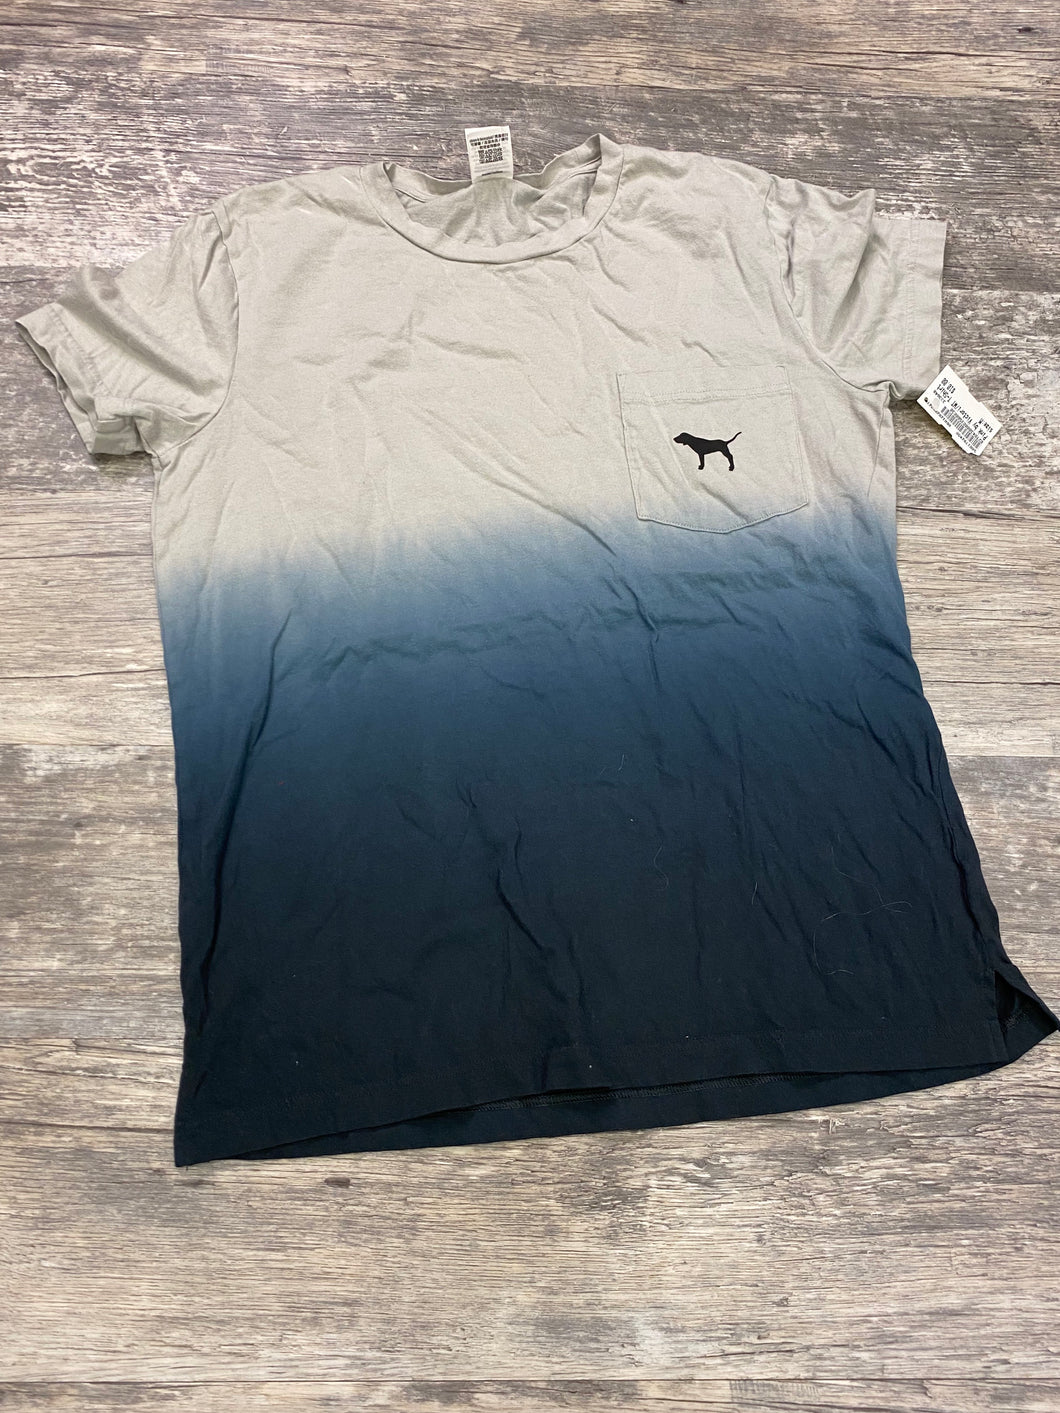 WT T-Shirt - Medium